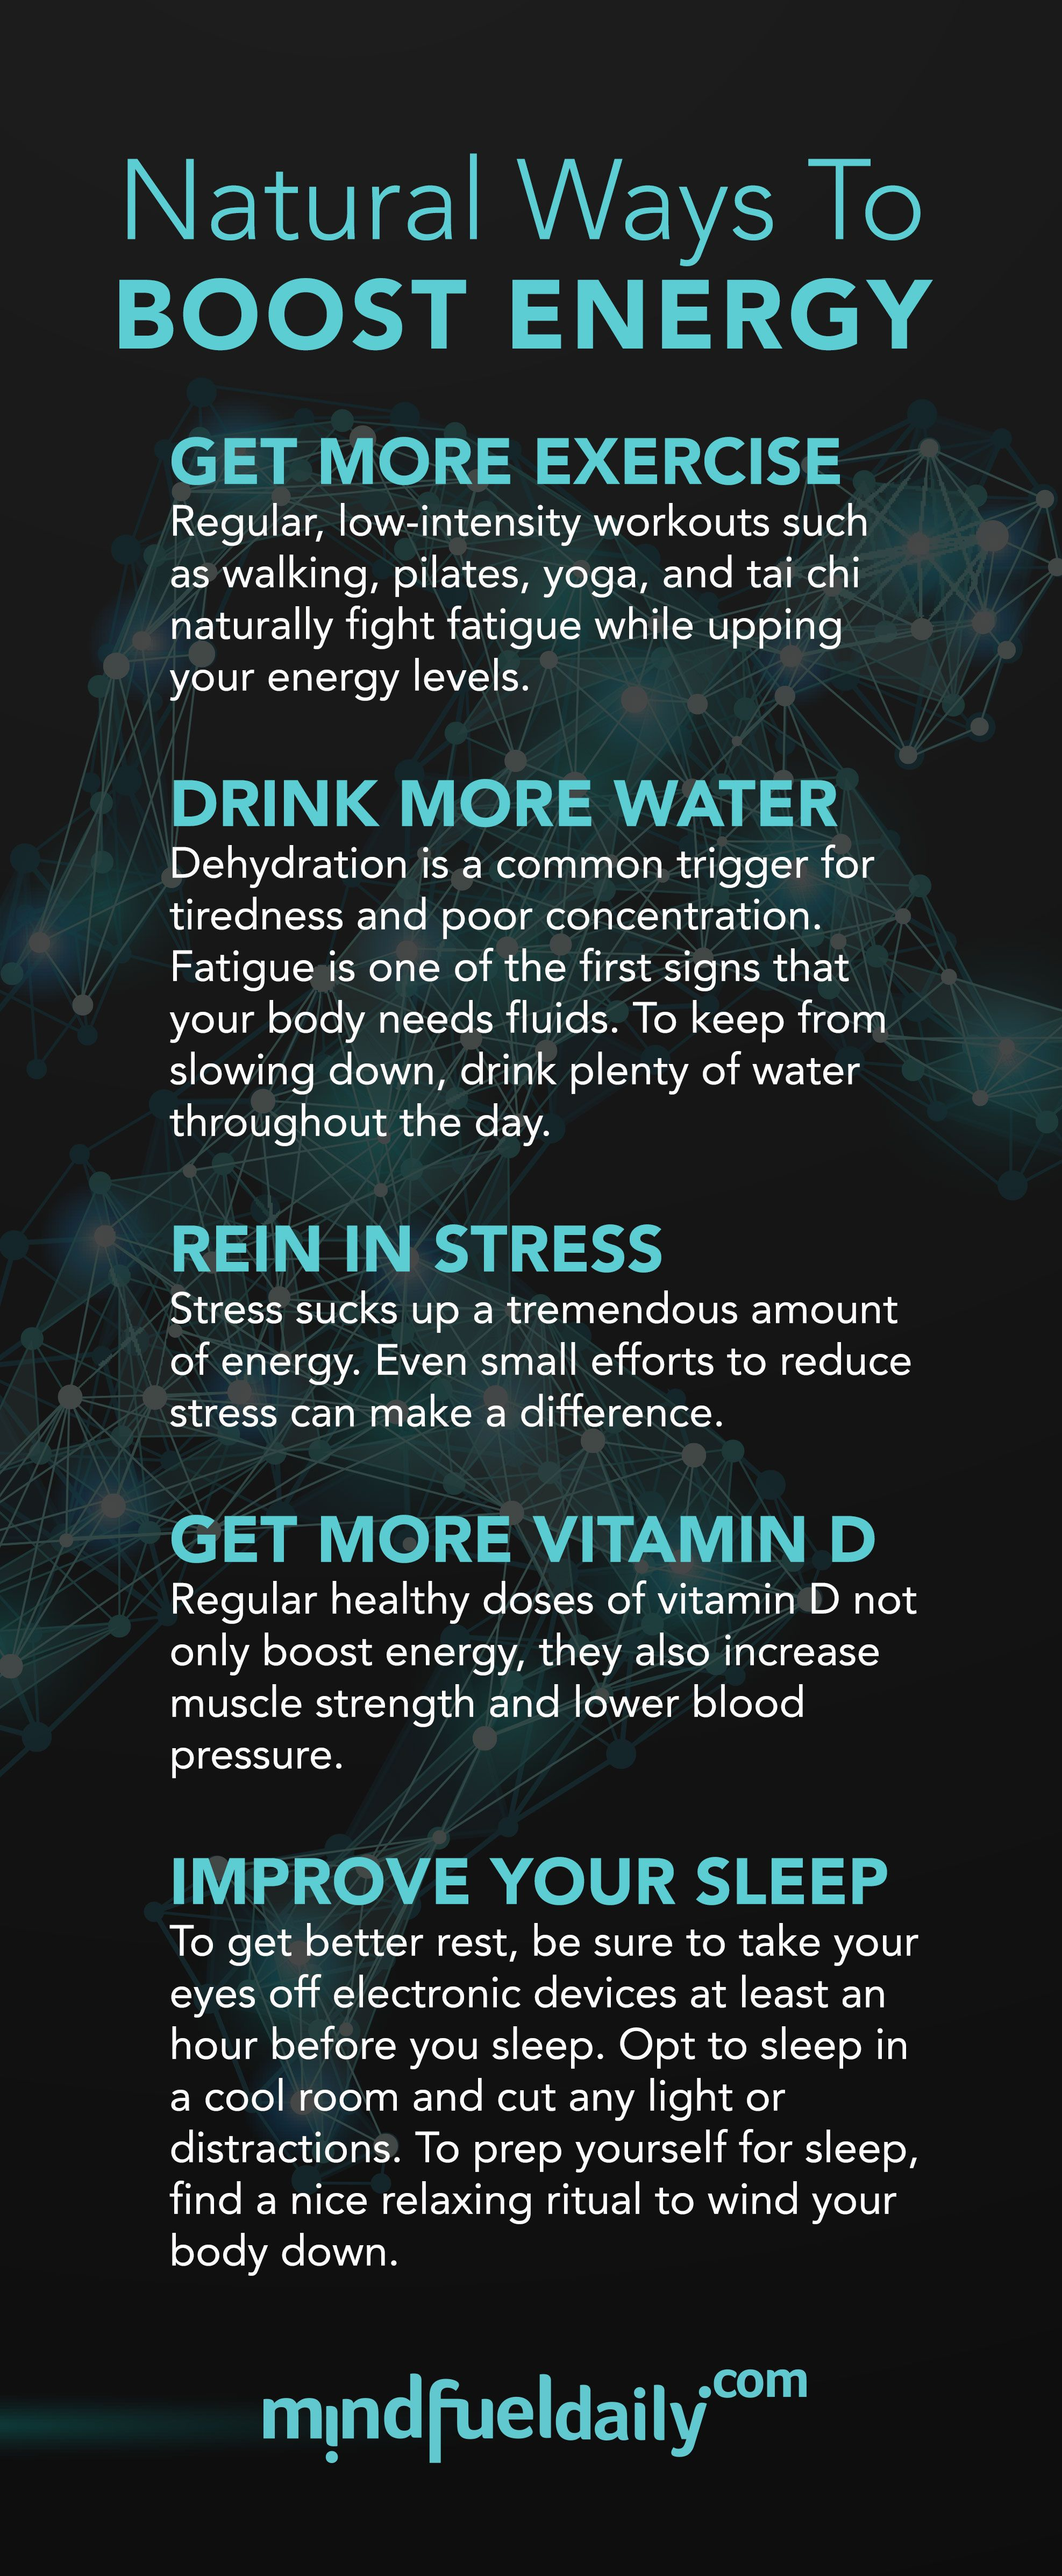 Natural Ways to Boost Energy Boost energy Low intensity workout Energy level